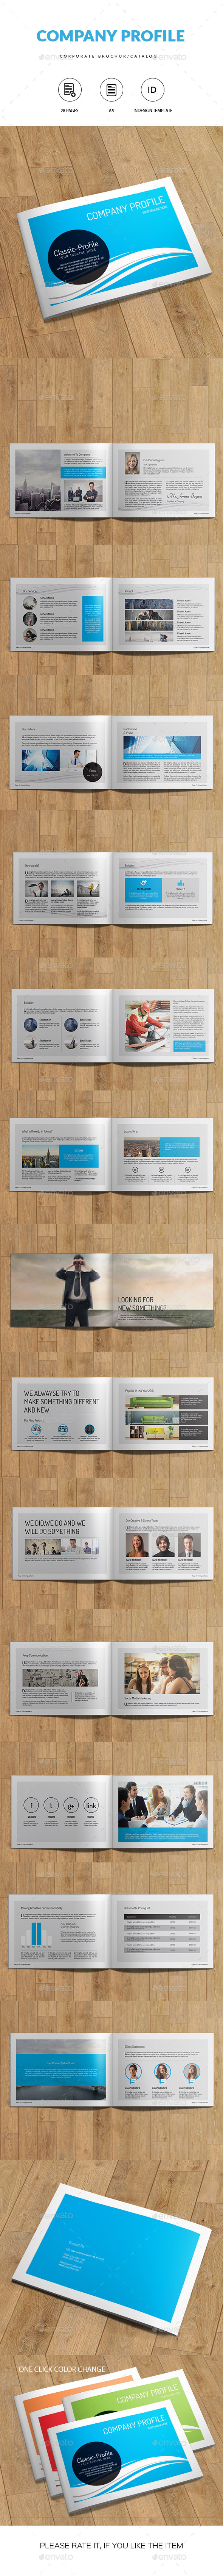 Company Profile | A5 Indesign Brochure - Catalogs Brochures